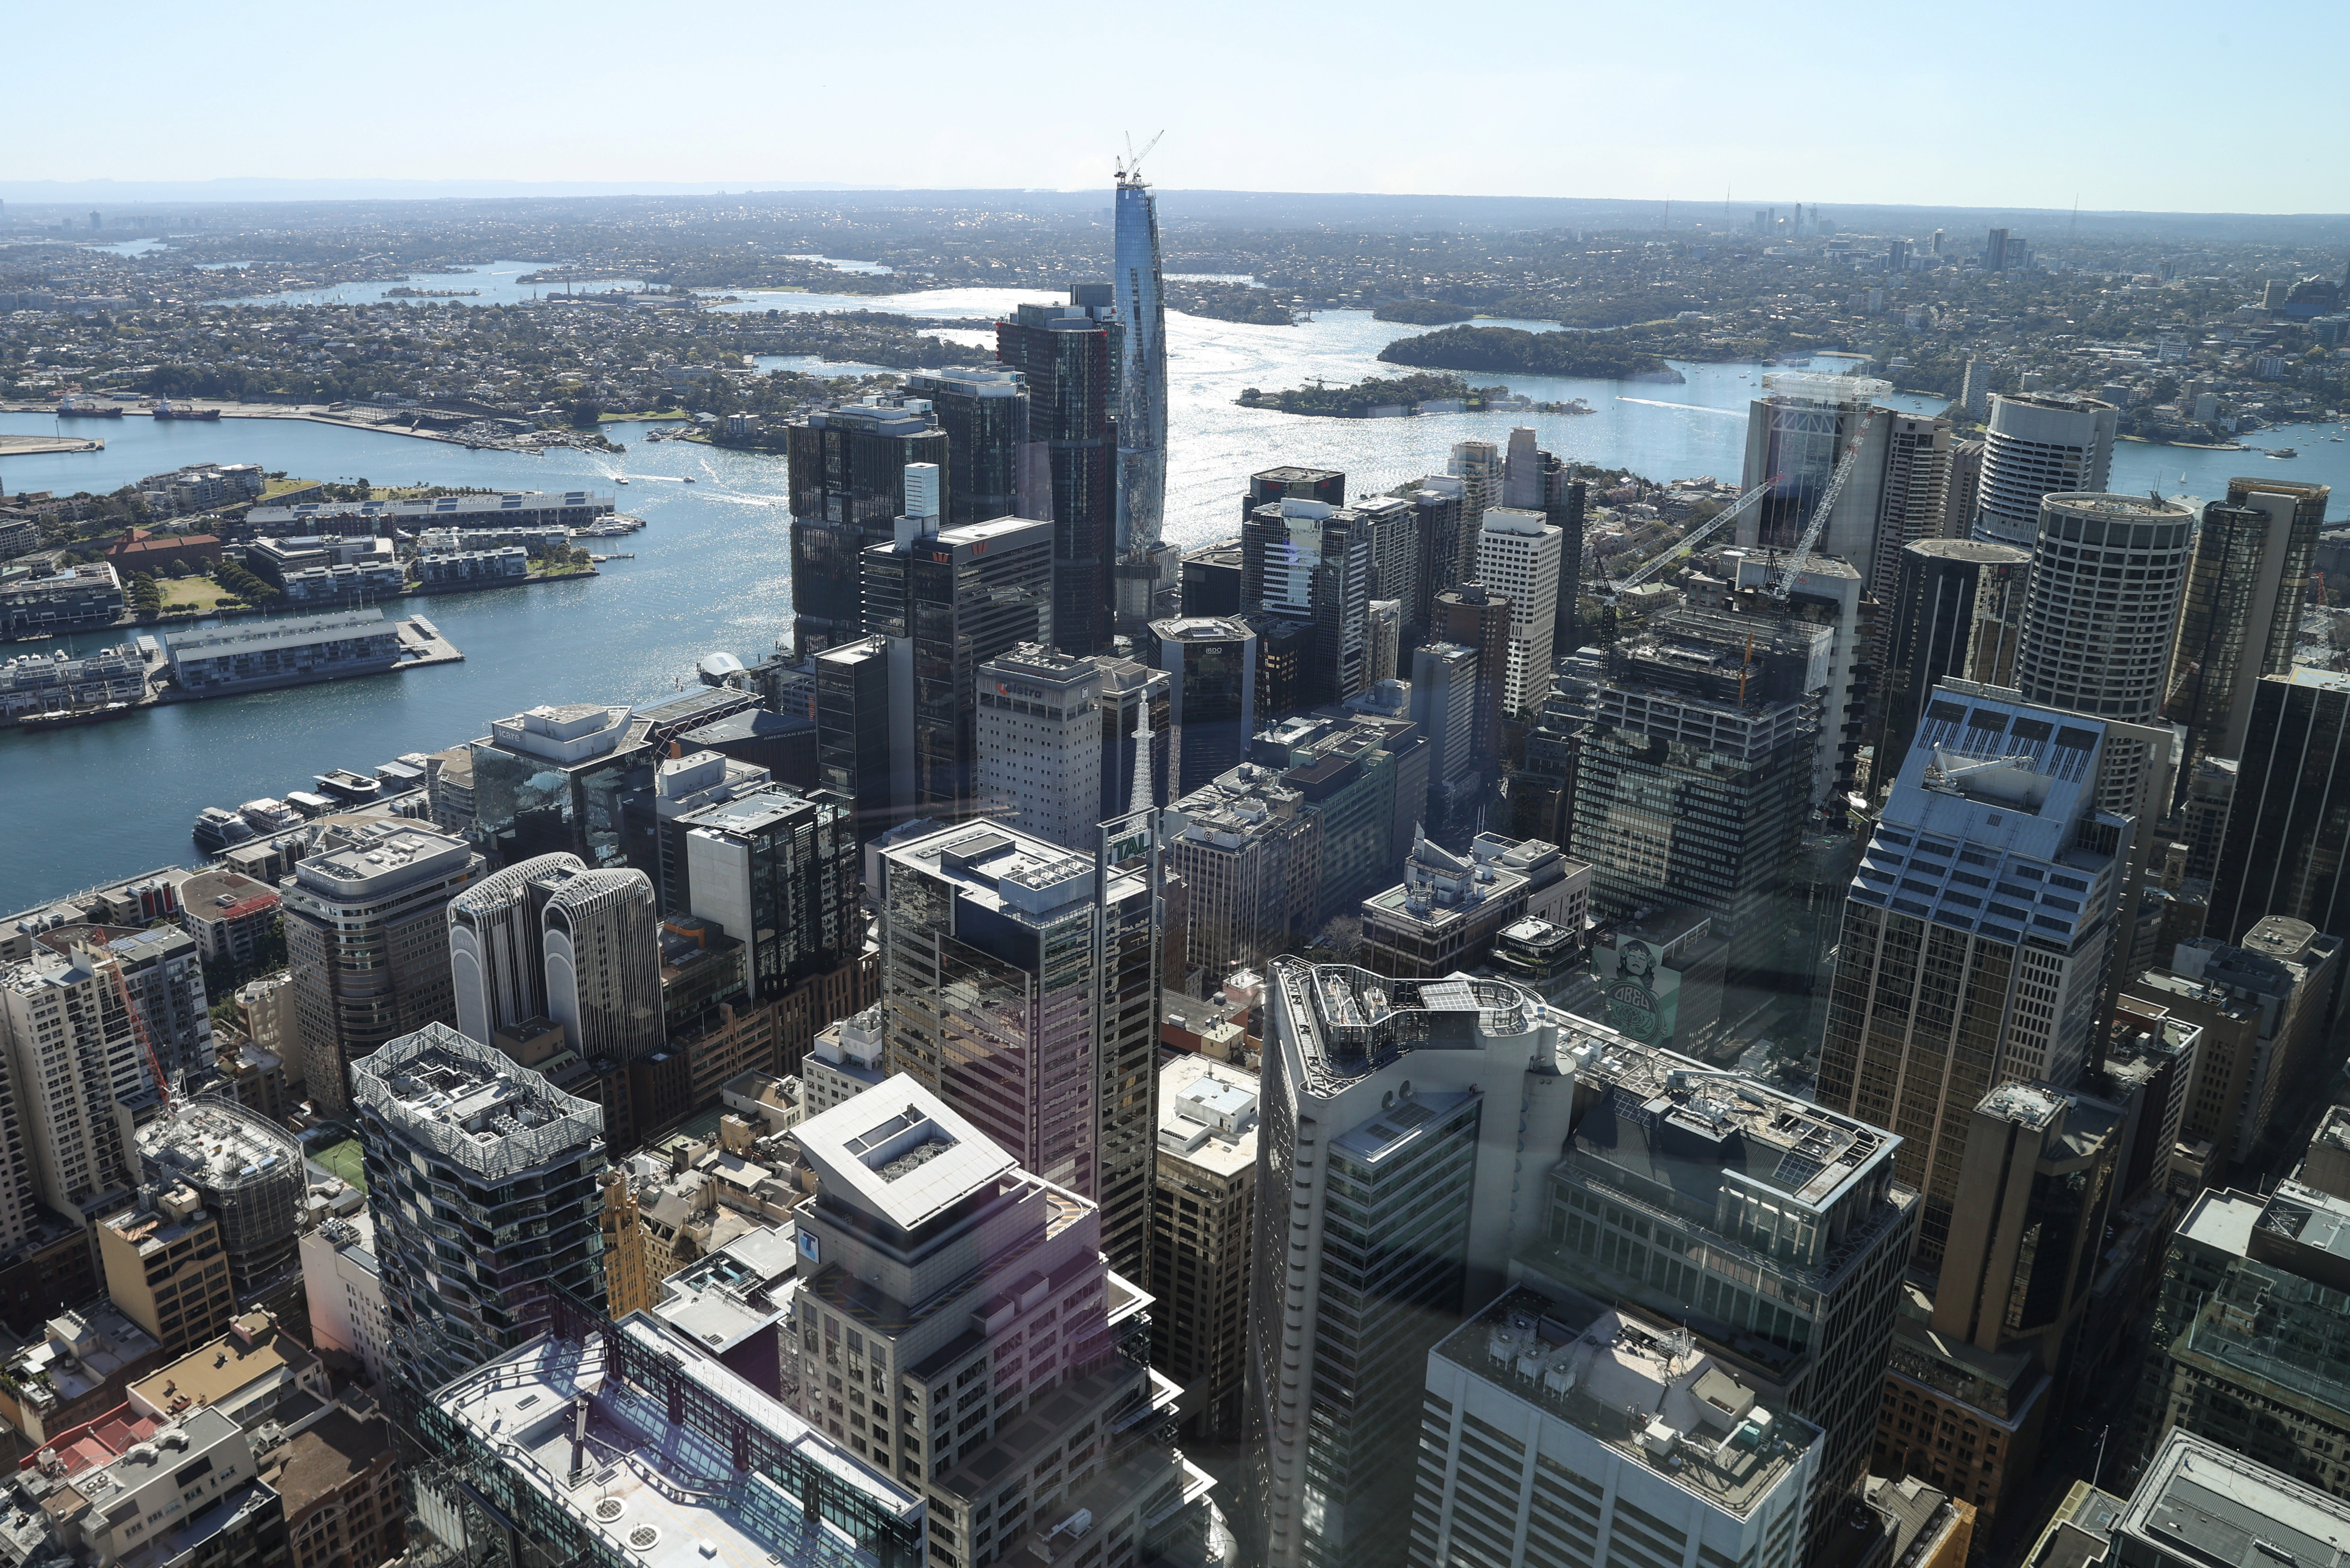 A view of the Central Business District and surrounding city is seen from the Sydney Tower Eye observation deck as the state of New South Wales continues to report low numbers for new daily cases of the coronavirus disease (COVID-19), in Sydney, Australia, August 28, 2020. REUTERS/Loren Elliott